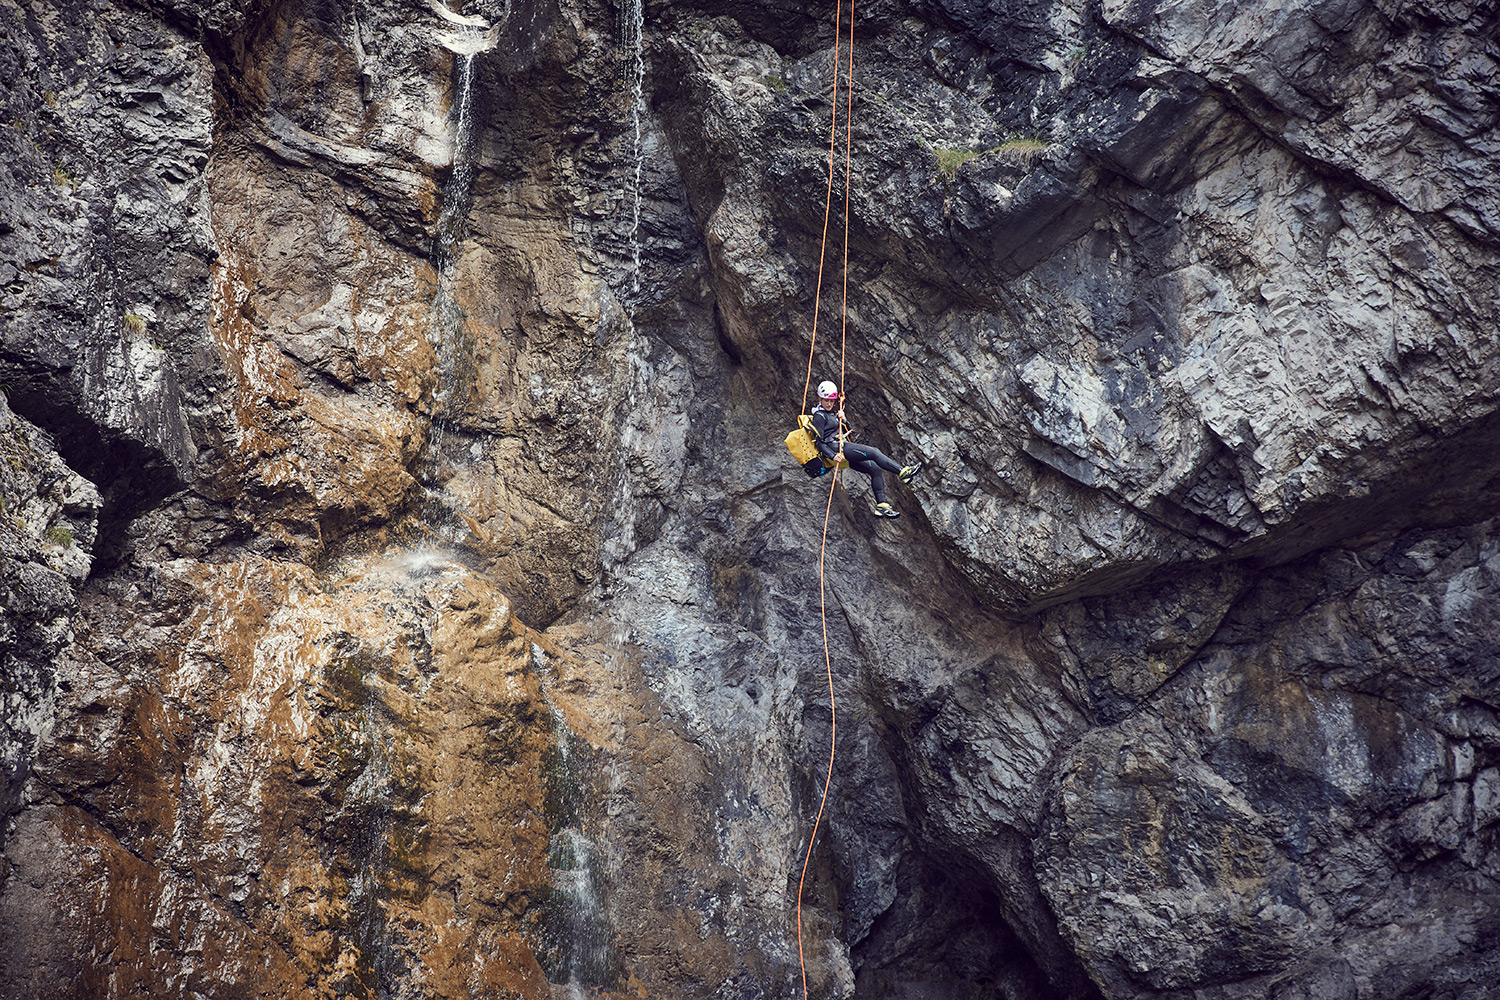 Stunt Woman Kim abseiling down a very high cliff on a canyoning tour in Austria